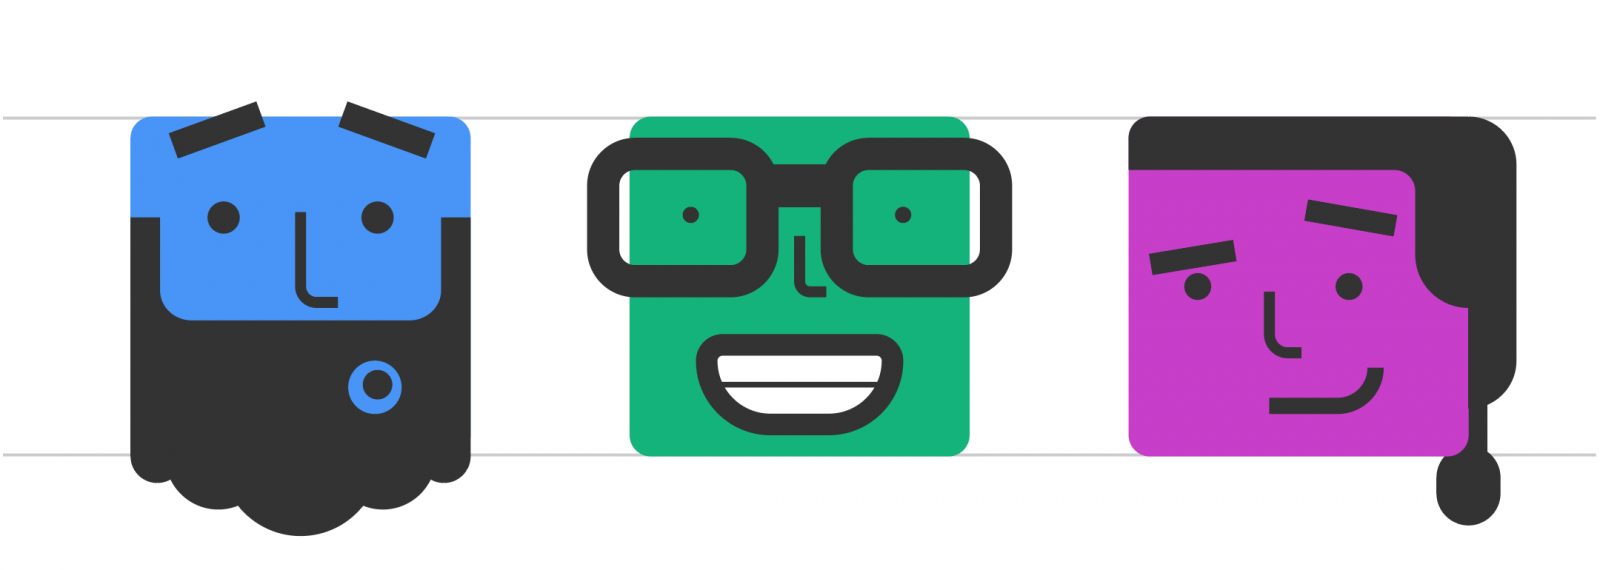 Modified avatars with two guide lines illustrating how the core of the illustrations continue to line up vertically along the top and bottom, while secondary icon elements extend beyond them.